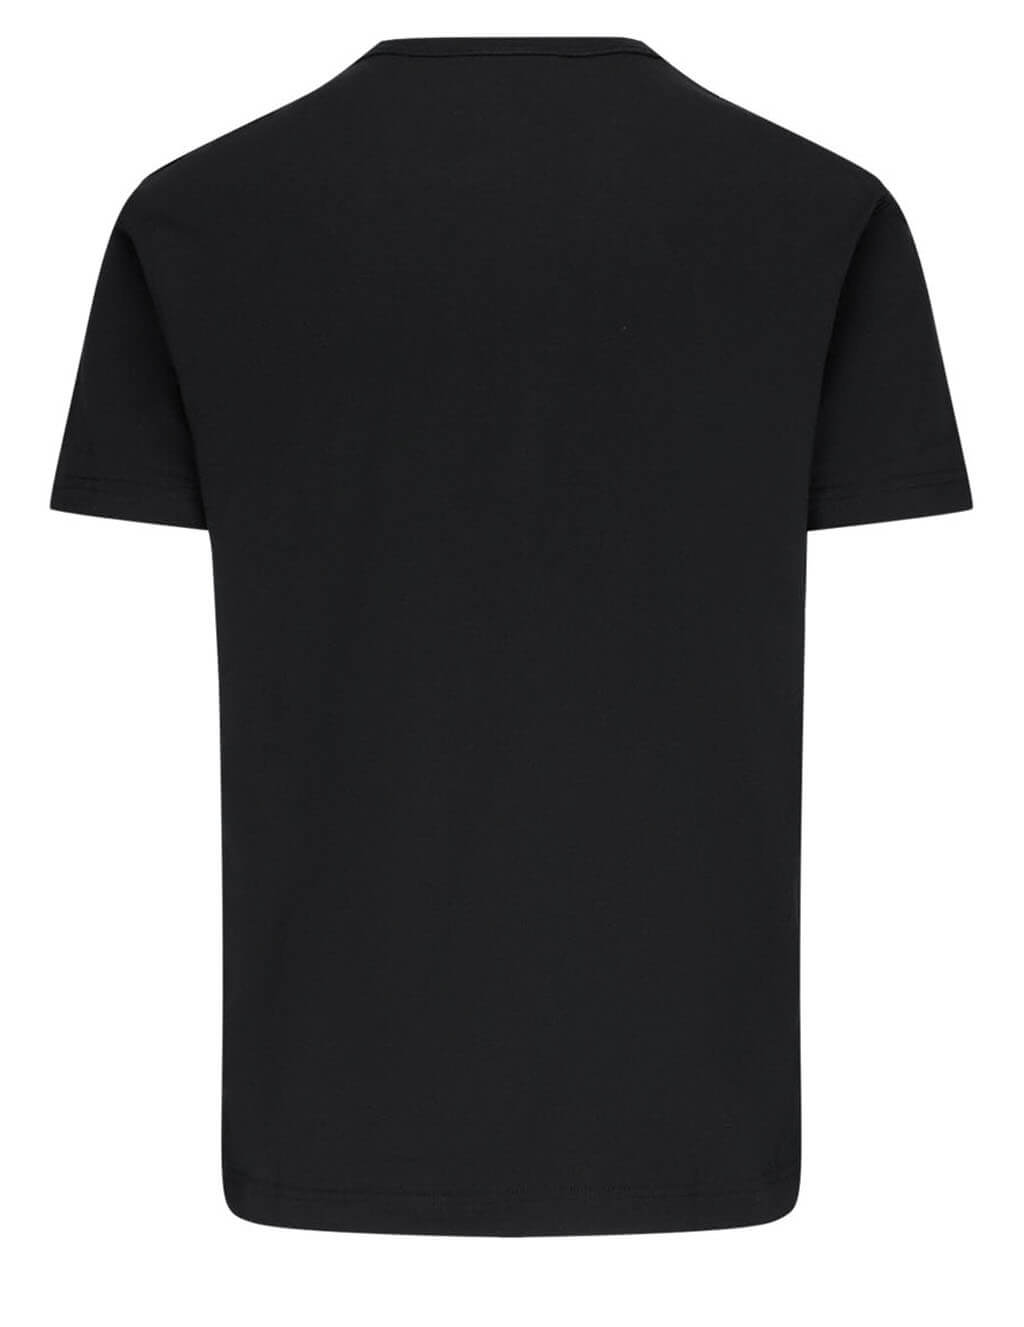 Men's Dolce&Gabbana Logo Plaque Cotton T-Shirt in Black - G8KJ9TFU7EQN0000